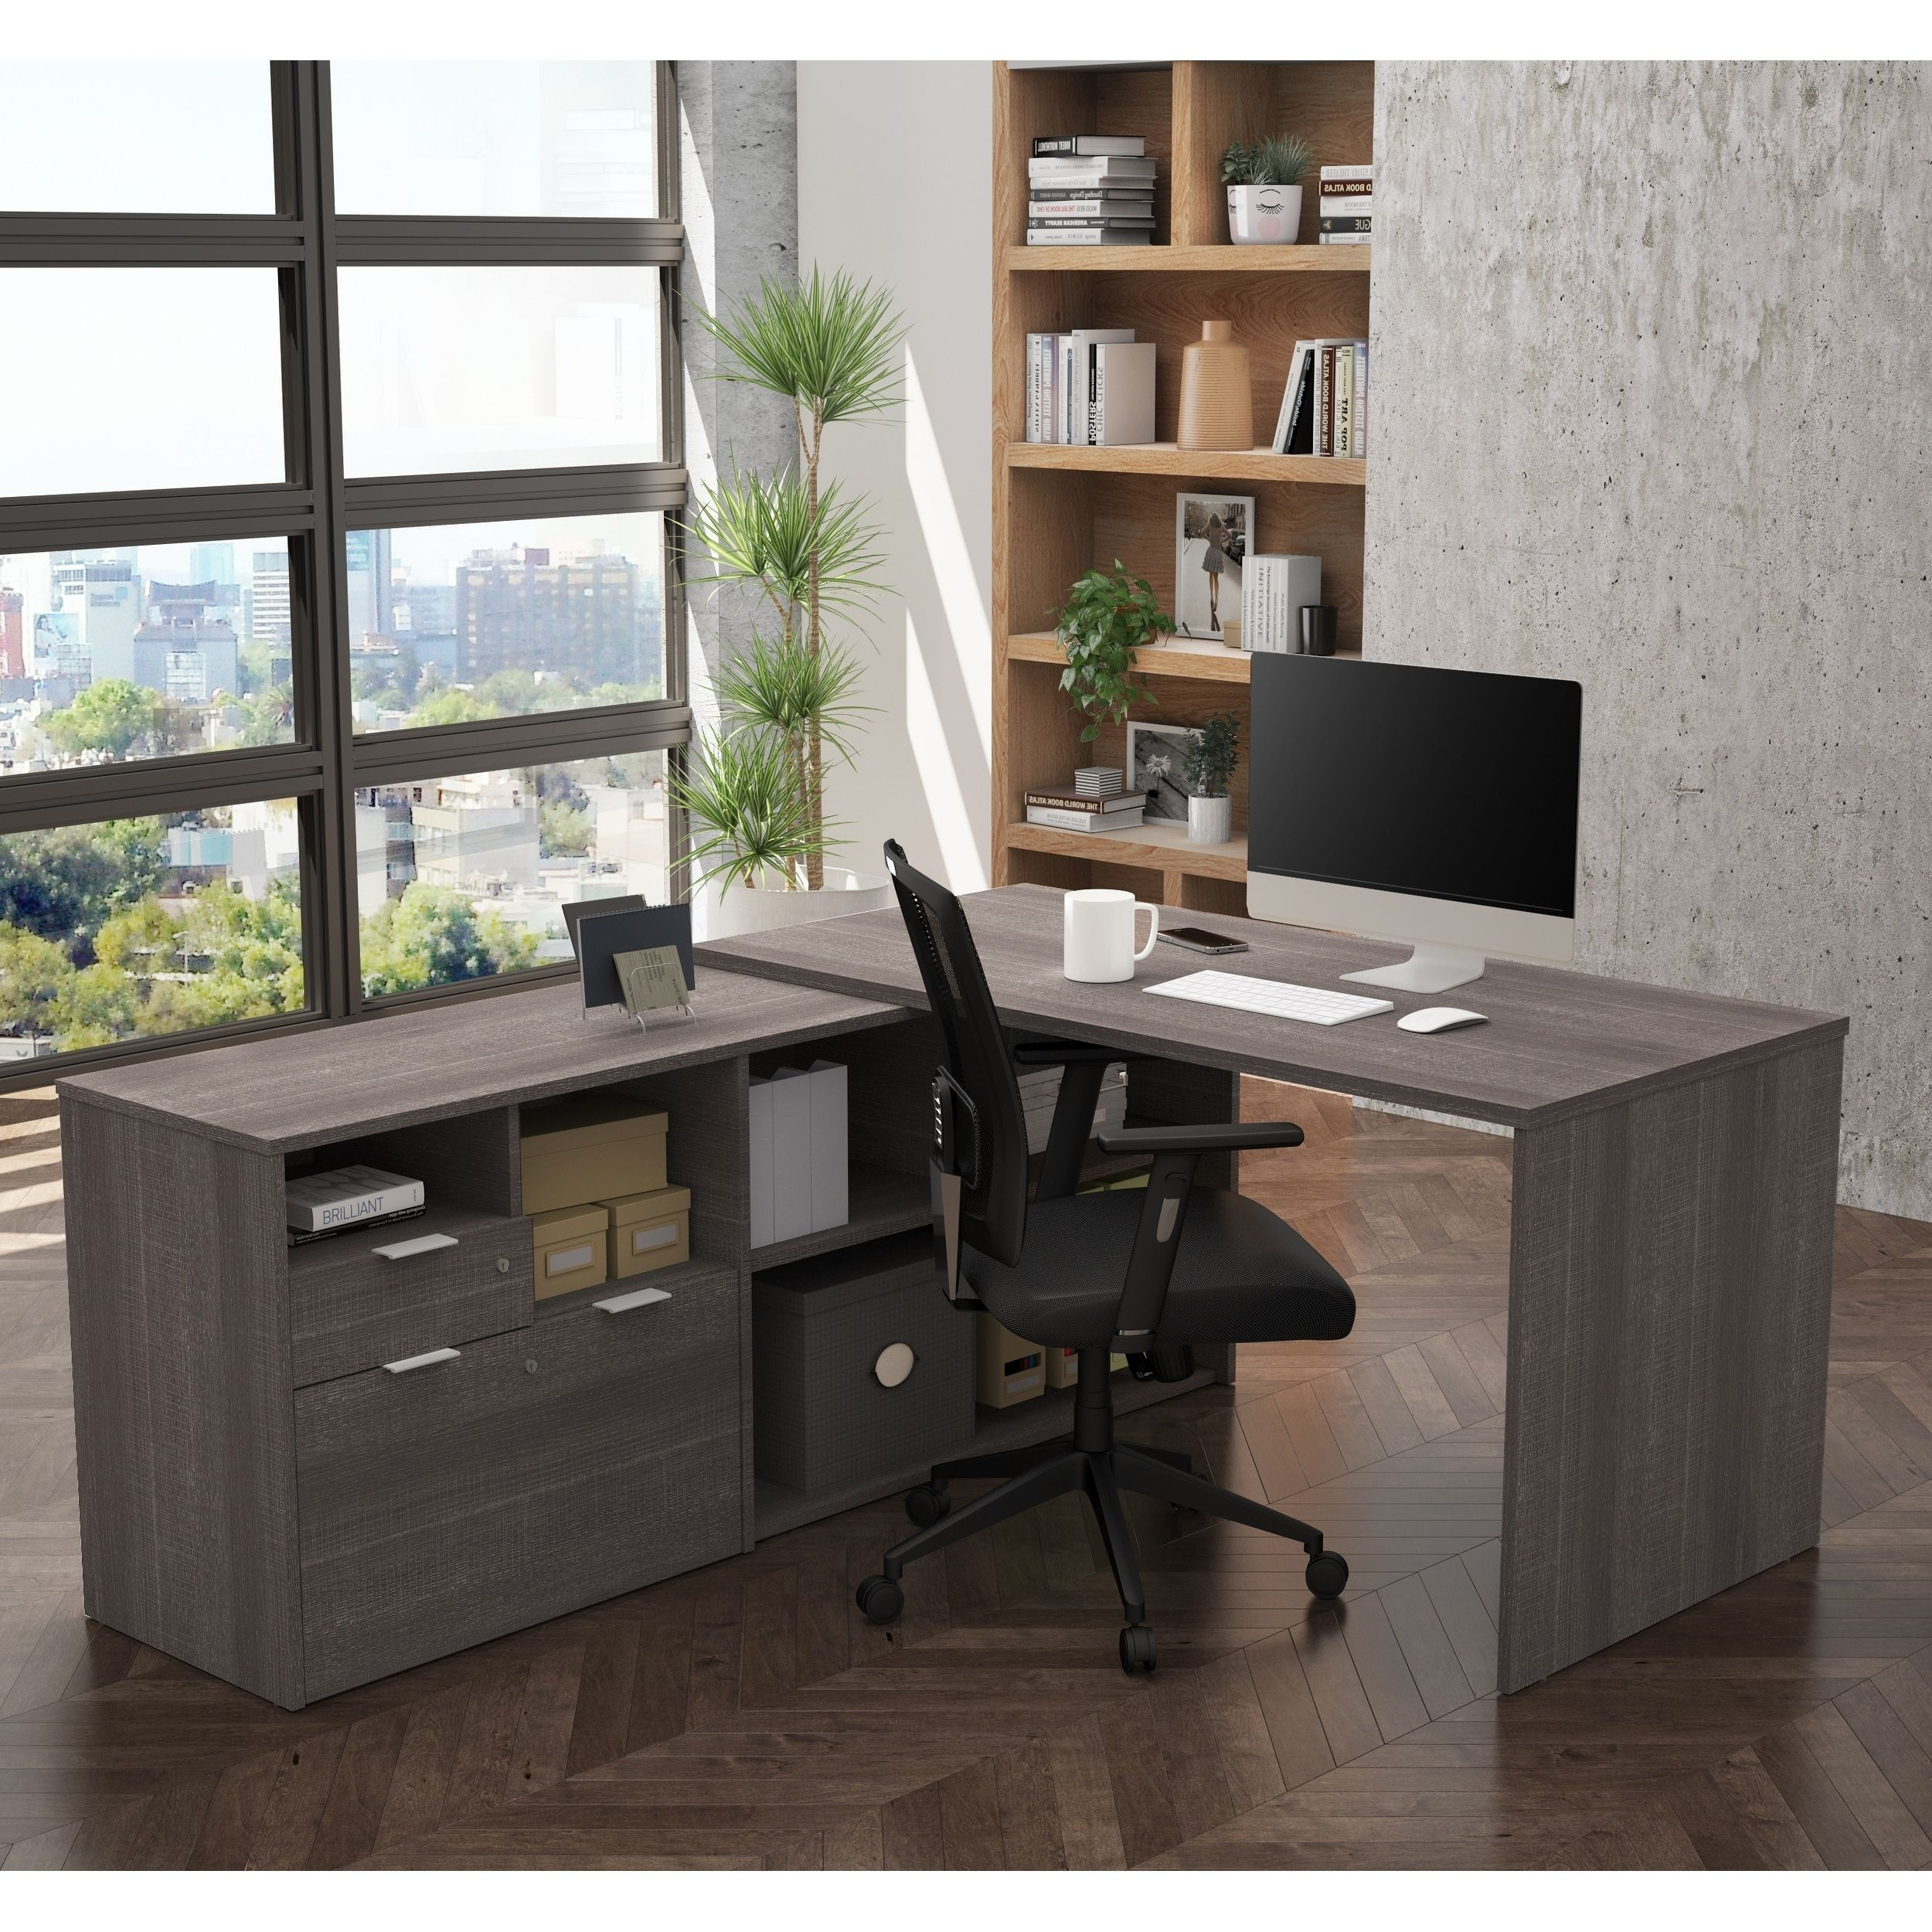 Bestar i plus ldesk with two drawers na bark grey in